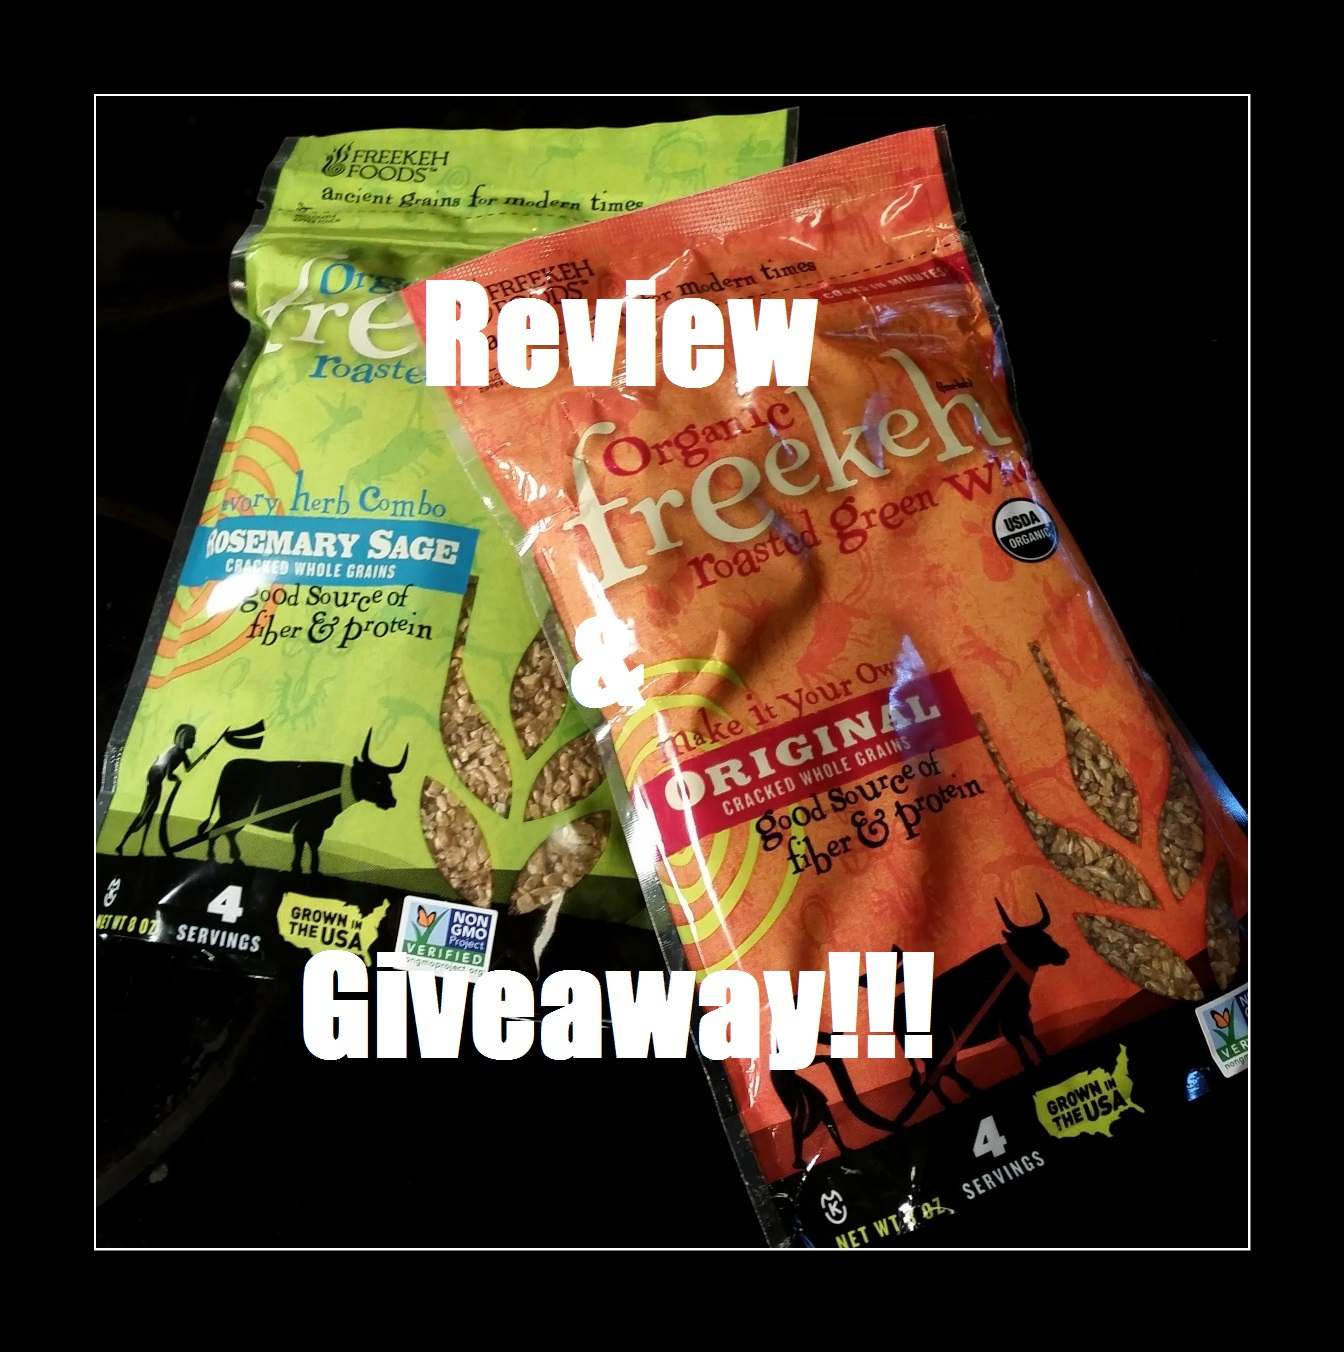 Freekeh Review and Giveaway